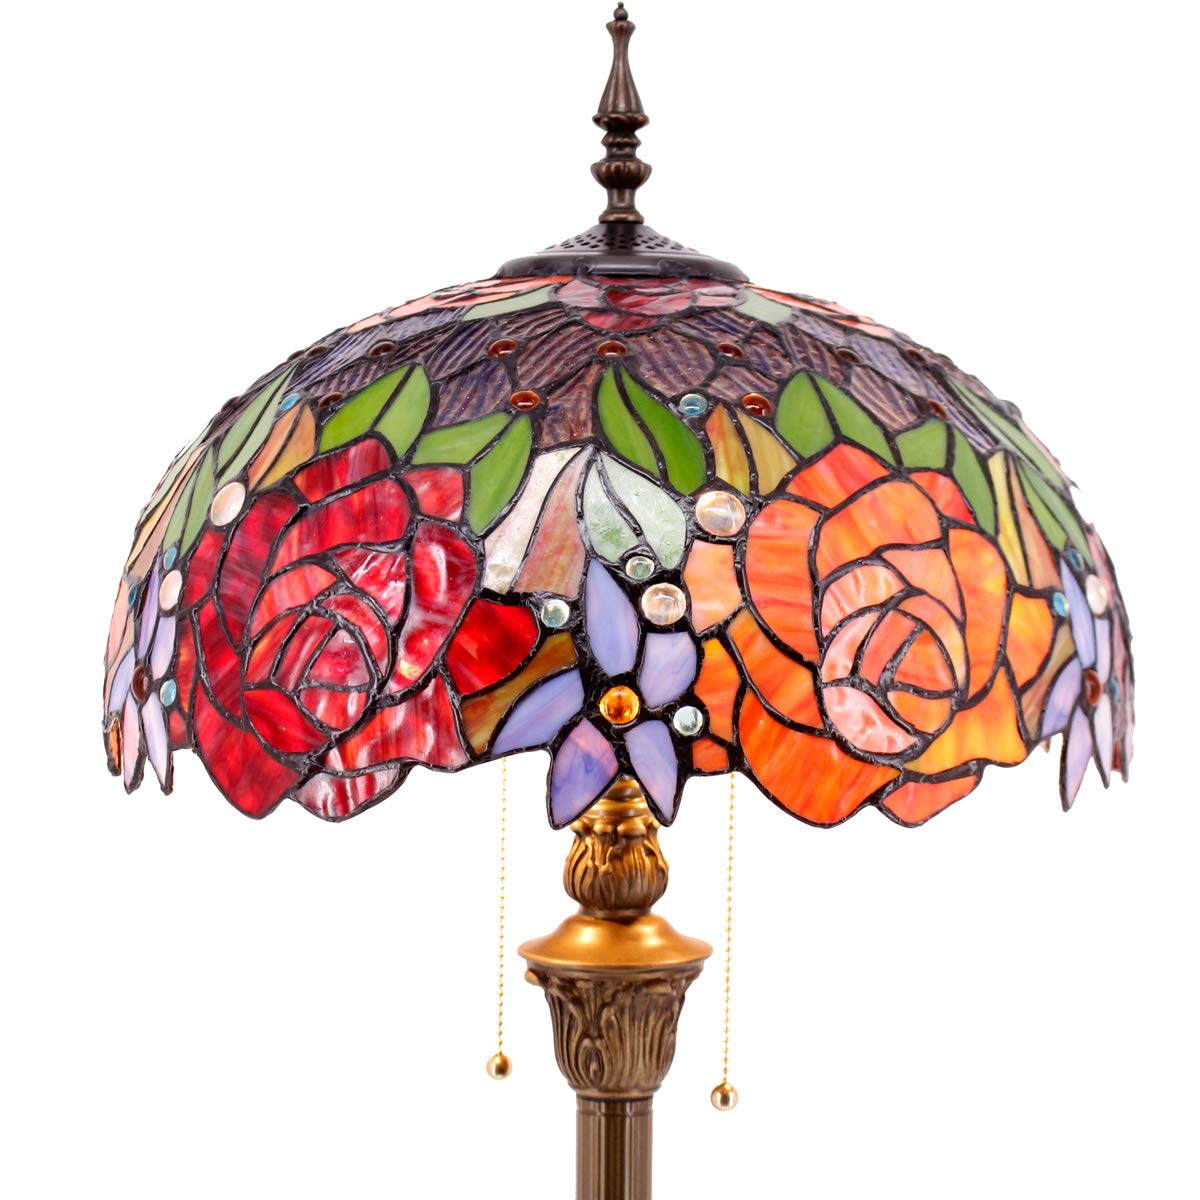 Tiffany Style Floor Standing Lamp 64 Inch Tall Stained Glass Red Rose Design Shade 2 Light Antique Base for Bedroom Living Room Reading Lighting Table Set S001 WERFACTORY by WERFACTORY